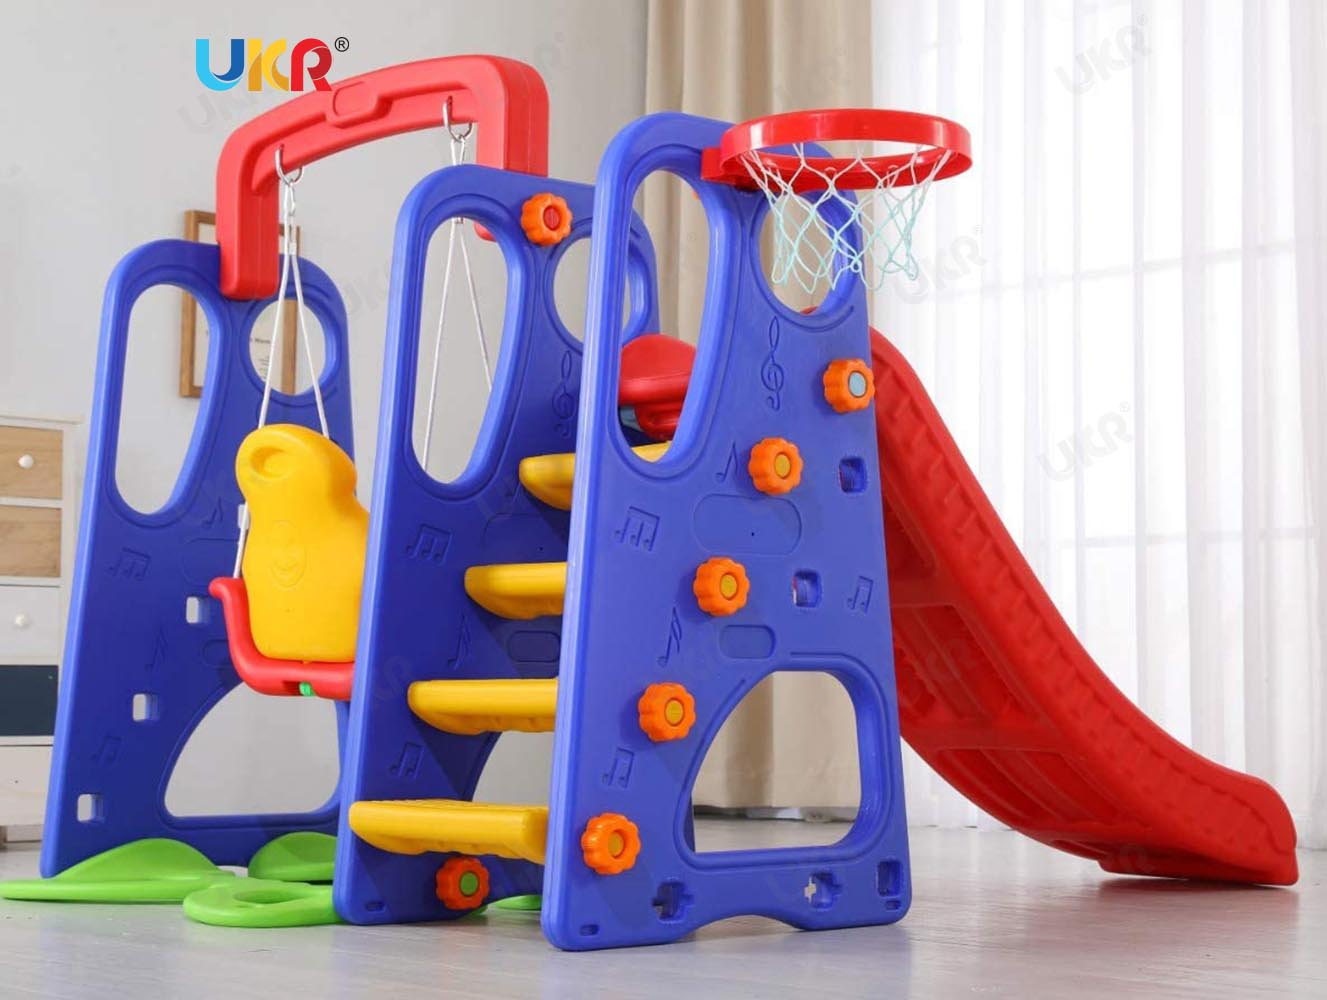 UKR Slide and Swing with Basketball 3 in 1